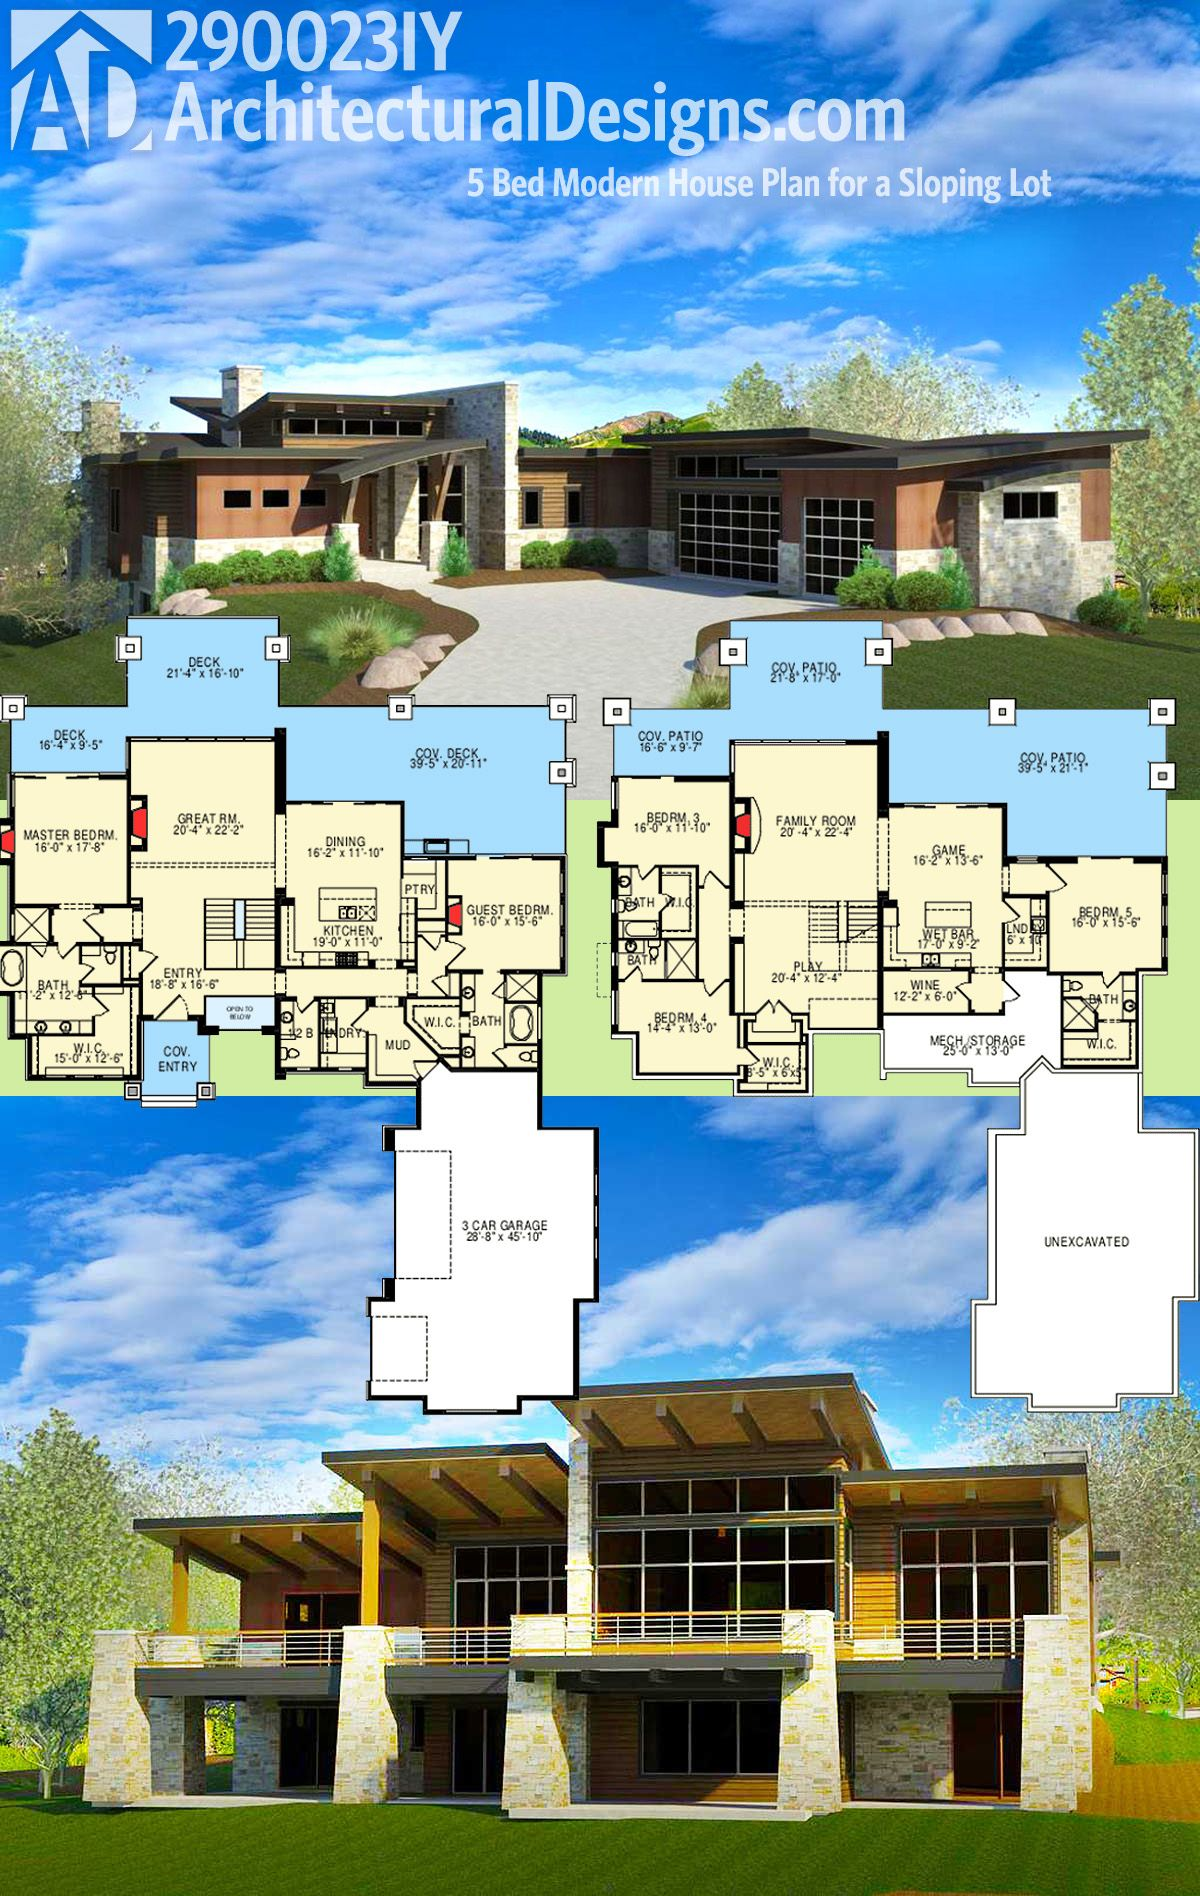 Architectural designs 5 bed modern house plan gives you over 5000 square feet of living and is designed for your rear sloping lot